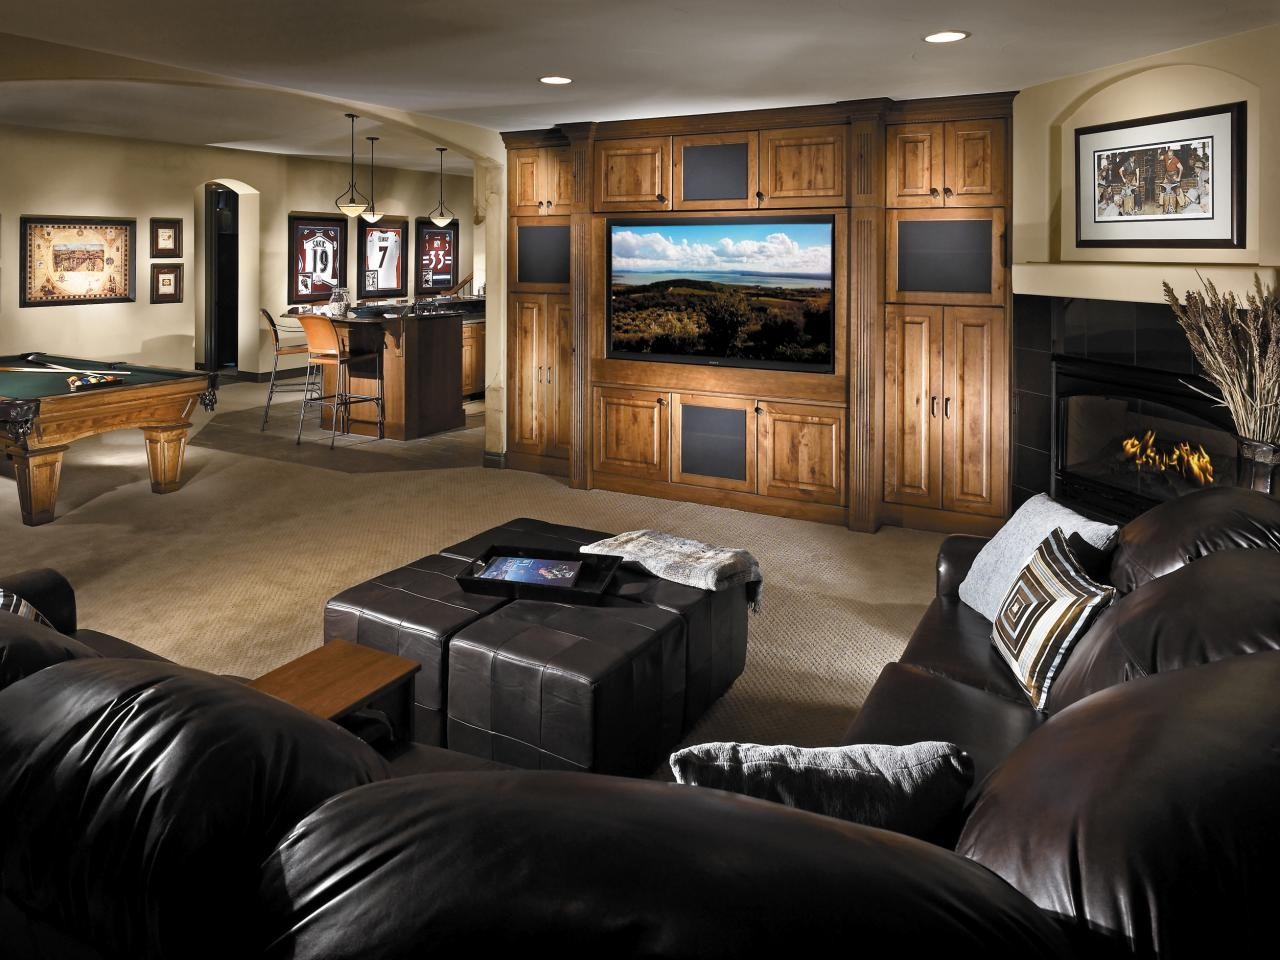 Home Basement Designs Interior Pleasing Basement Design And Layout  Hgtv Review